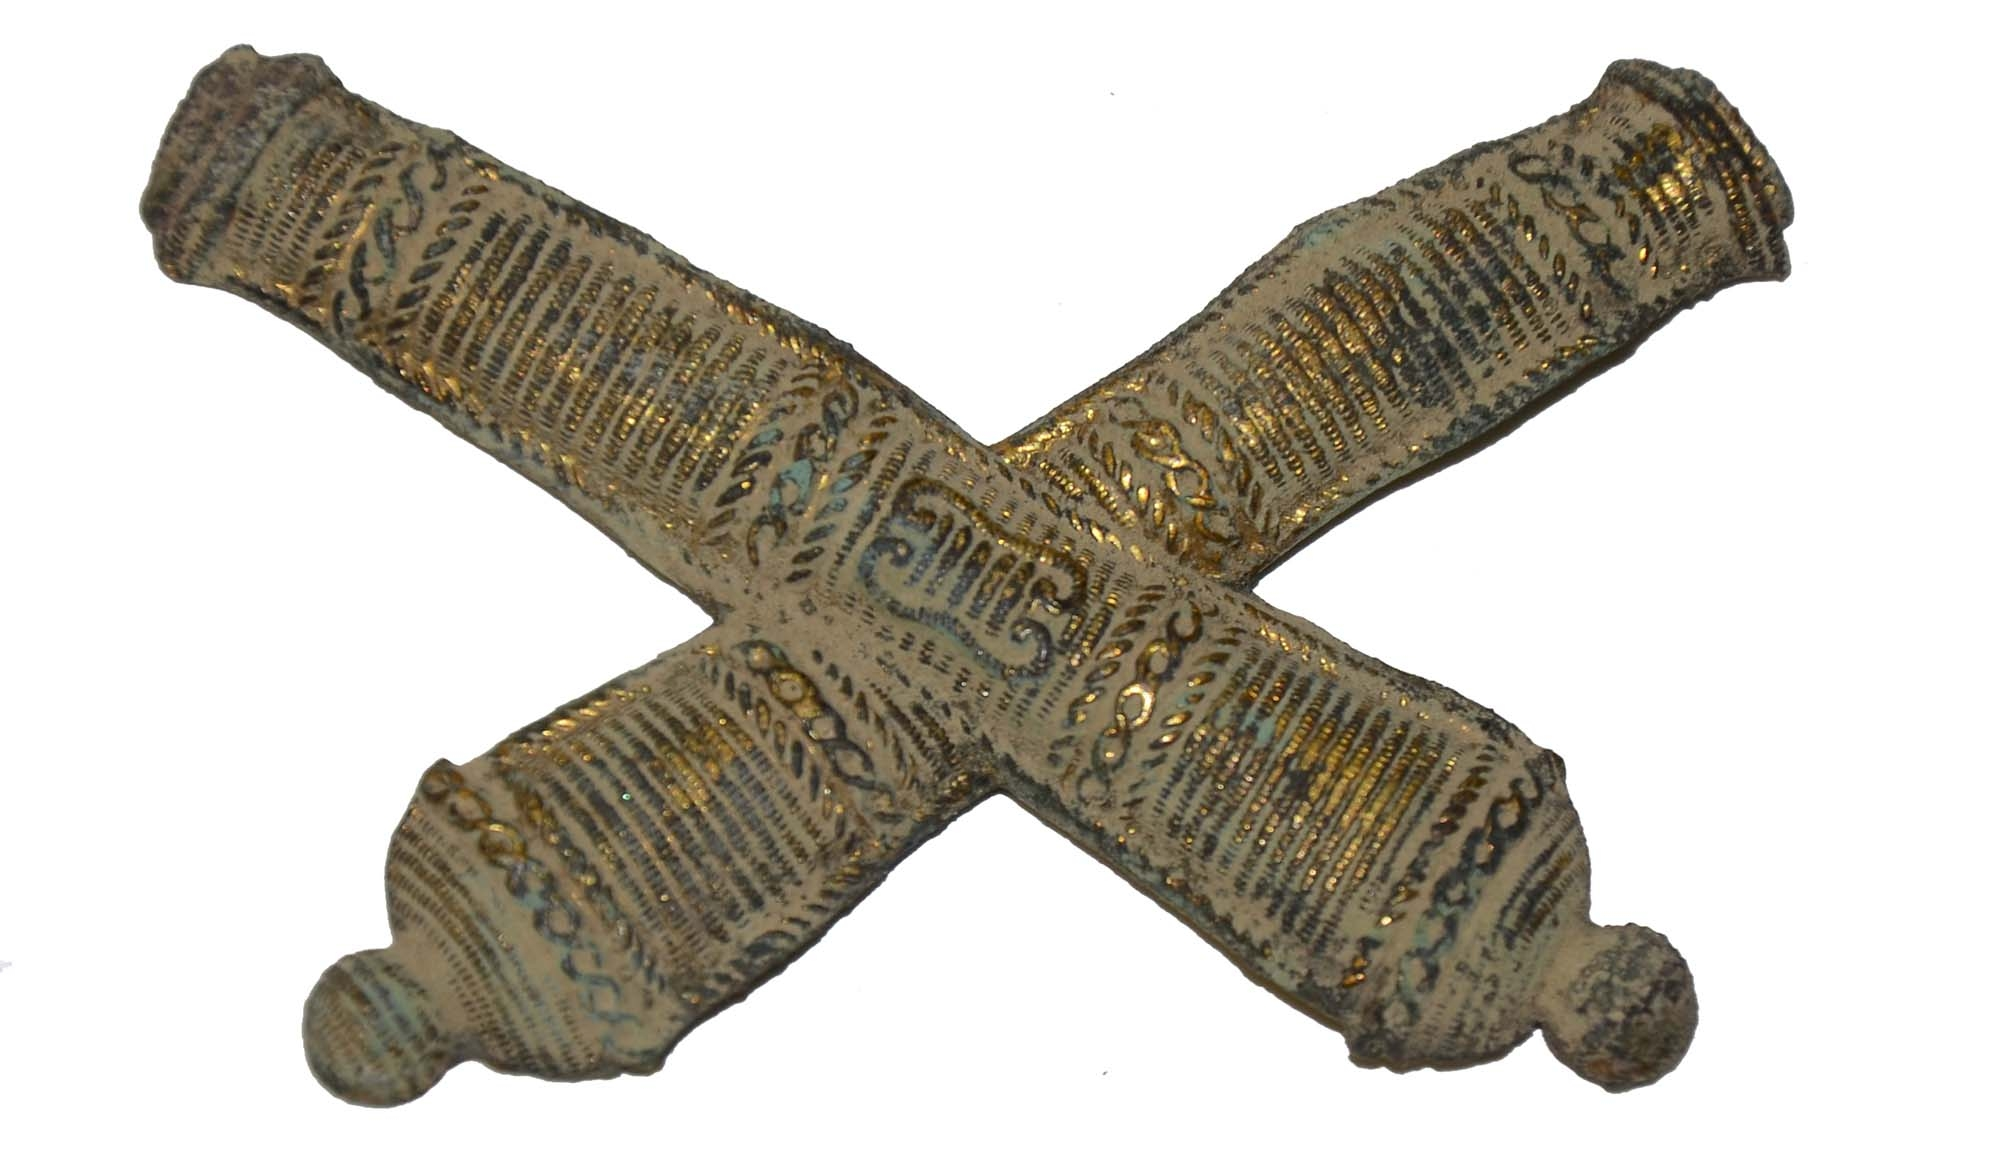 FALSE EMBROIDERED ARTILLERY INSIGNIA RECOVERED AT BRANDY STATION